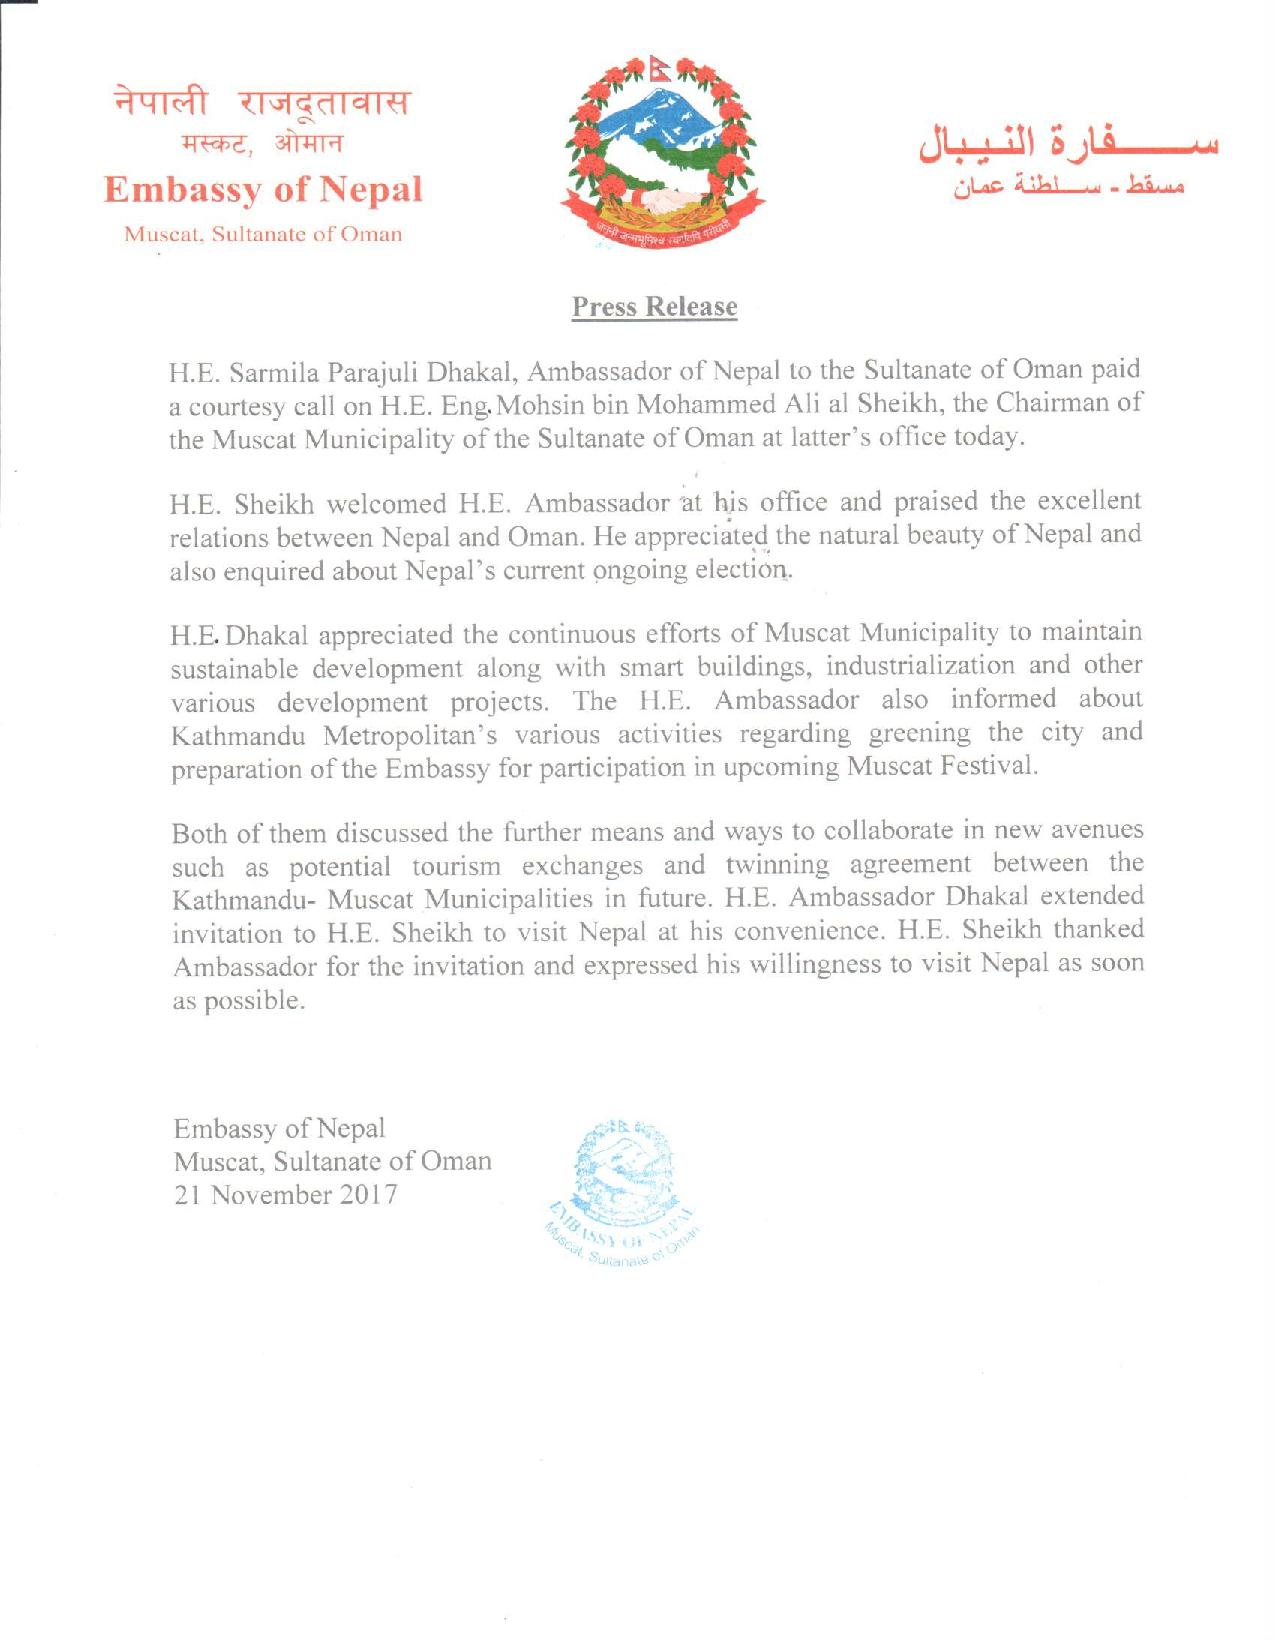 Press release issued by embassy of nepal muscat regarding a press release issued by embassy of nepal muscat regarding a courtesy call stopboris Images